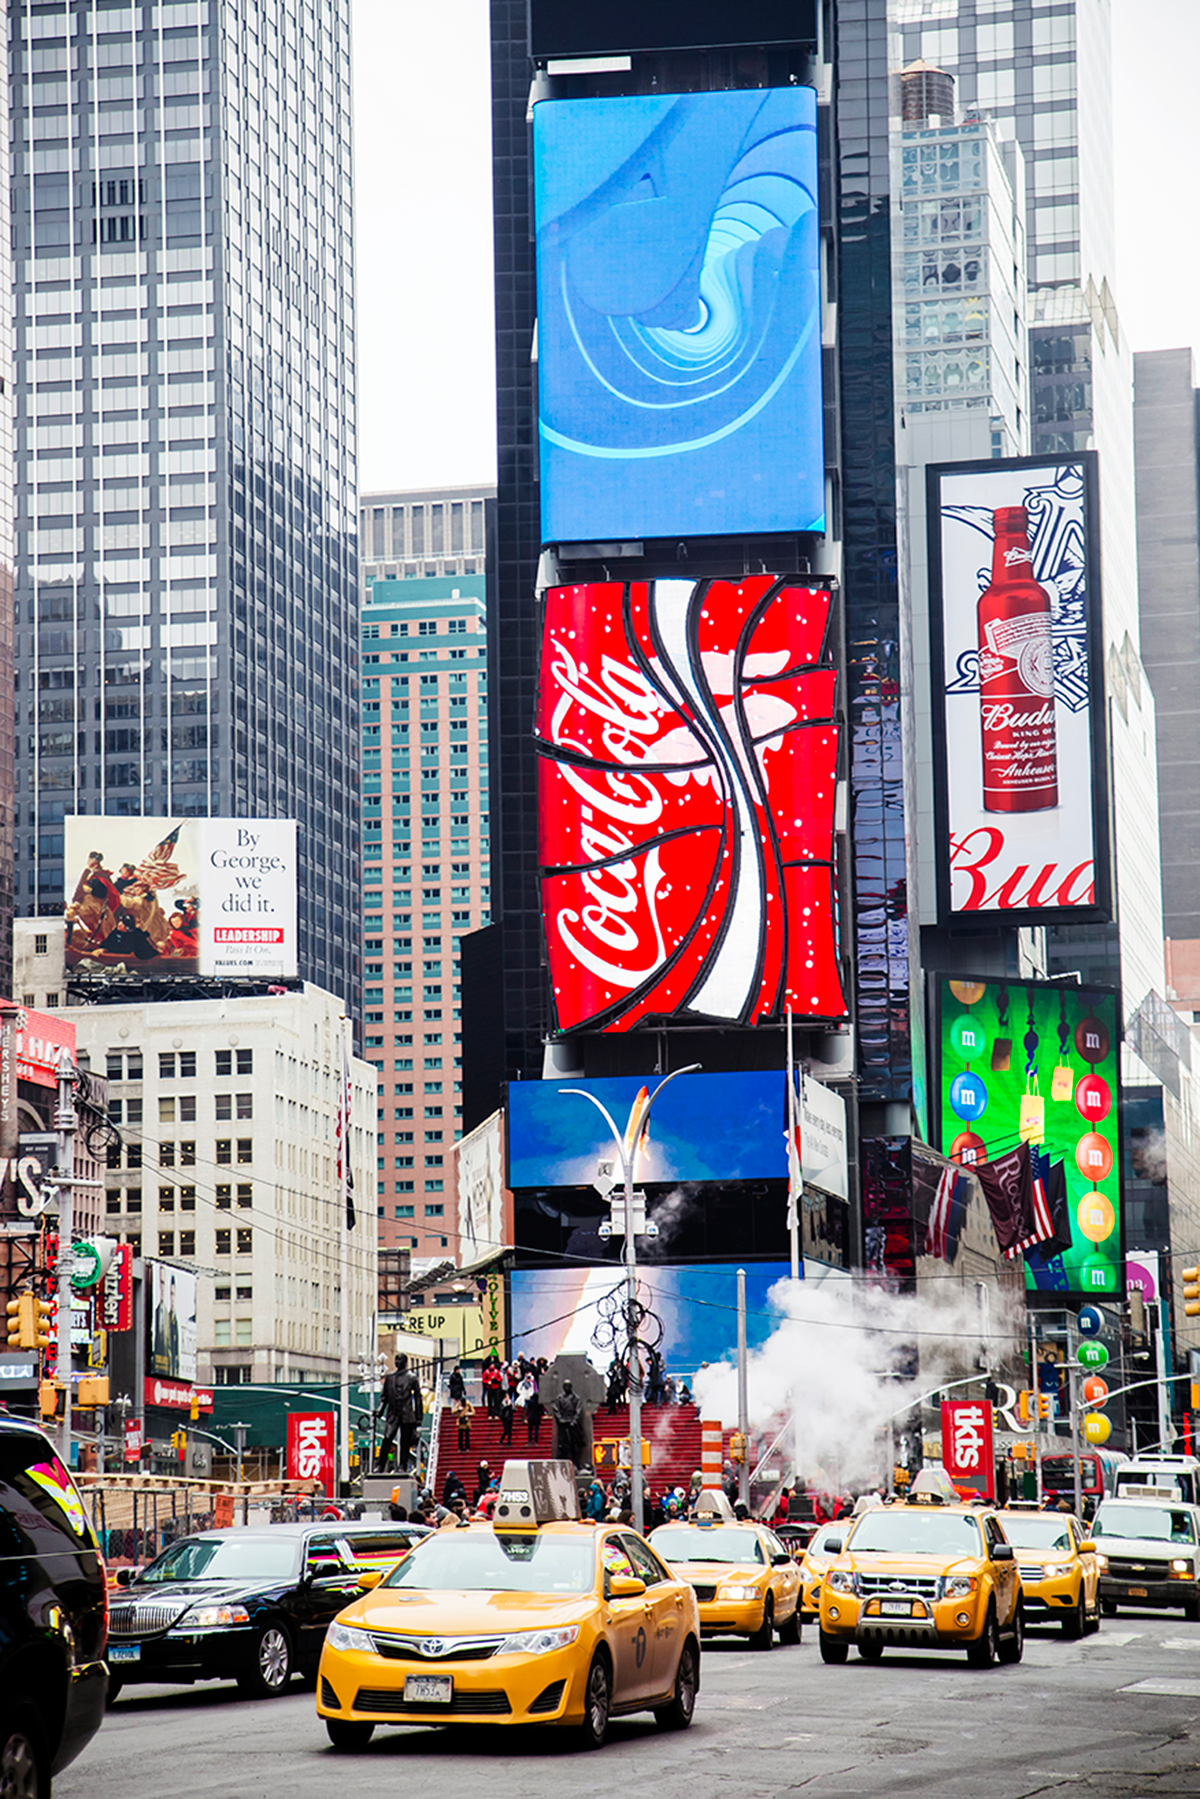 Beautiful photos of New York City February 2015 Times Square at day